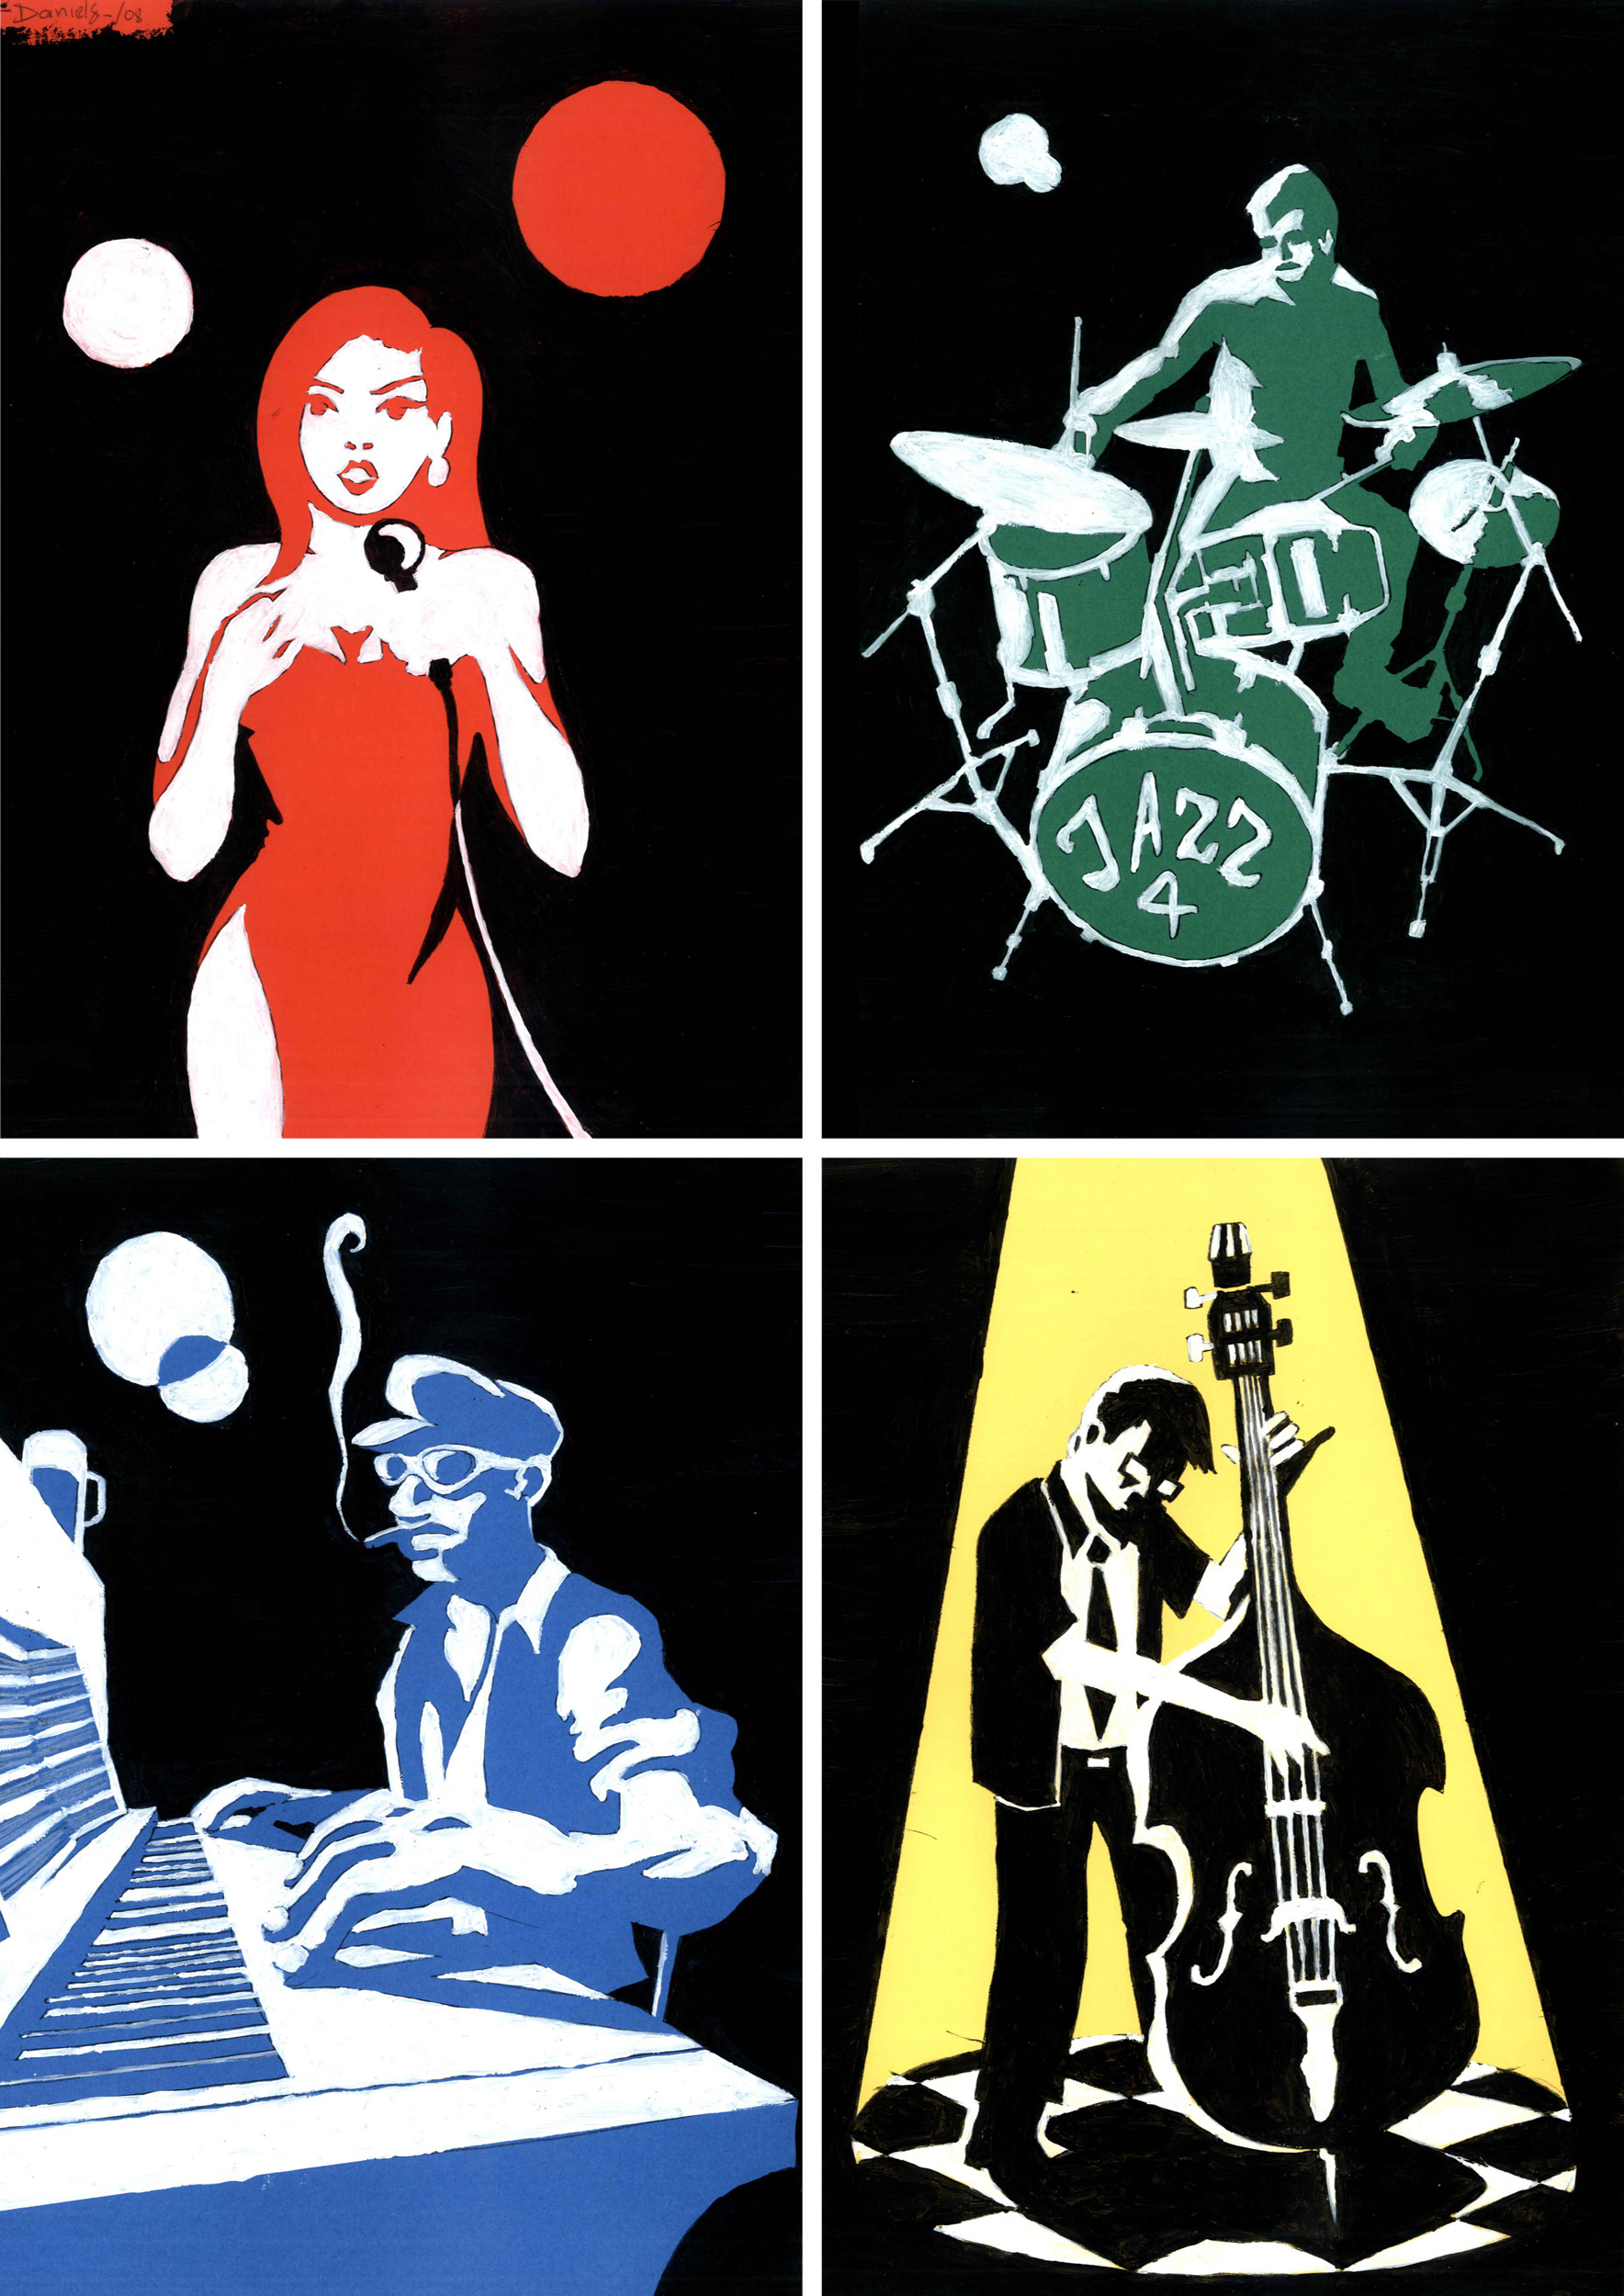 Daniel Garcia Art Illustration the Jazz Band